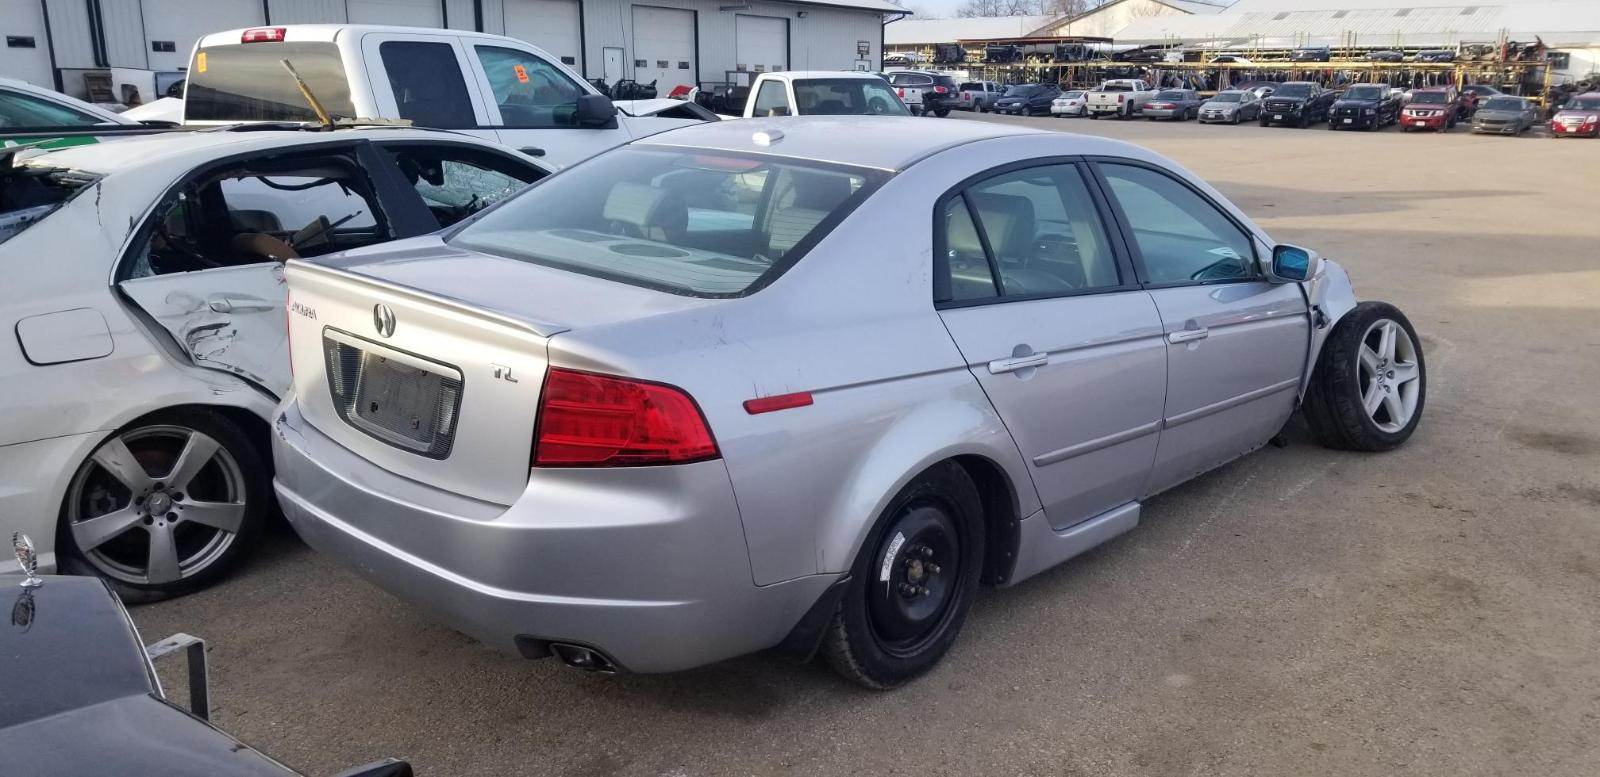 Used Headliners For 2005 Acura Tl Acura Tl Partsmarket